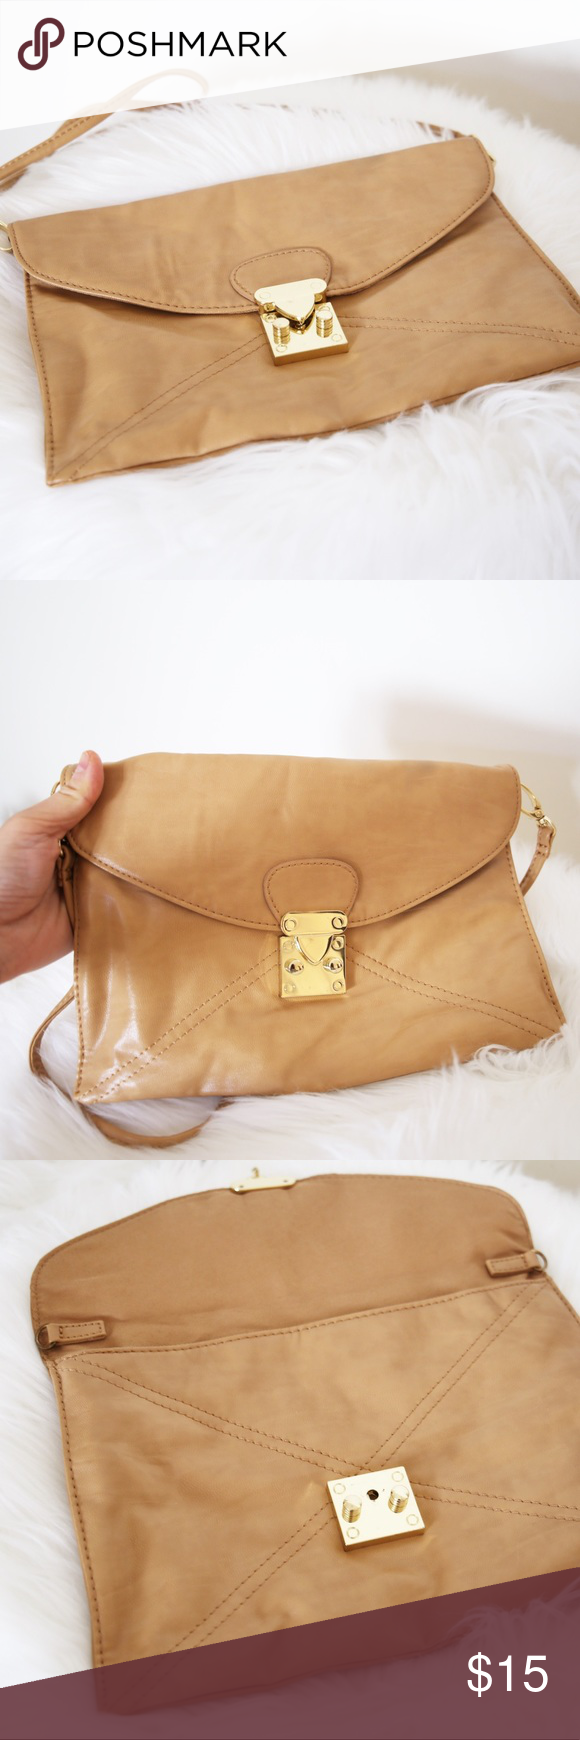 6477e42dbe56 Stylish Faux Leather Camel Crossbody Purse Forever 21 soft camel light tan  colored crossbody purse - Envelope style crossbody - Long thing strap -  Gold ...